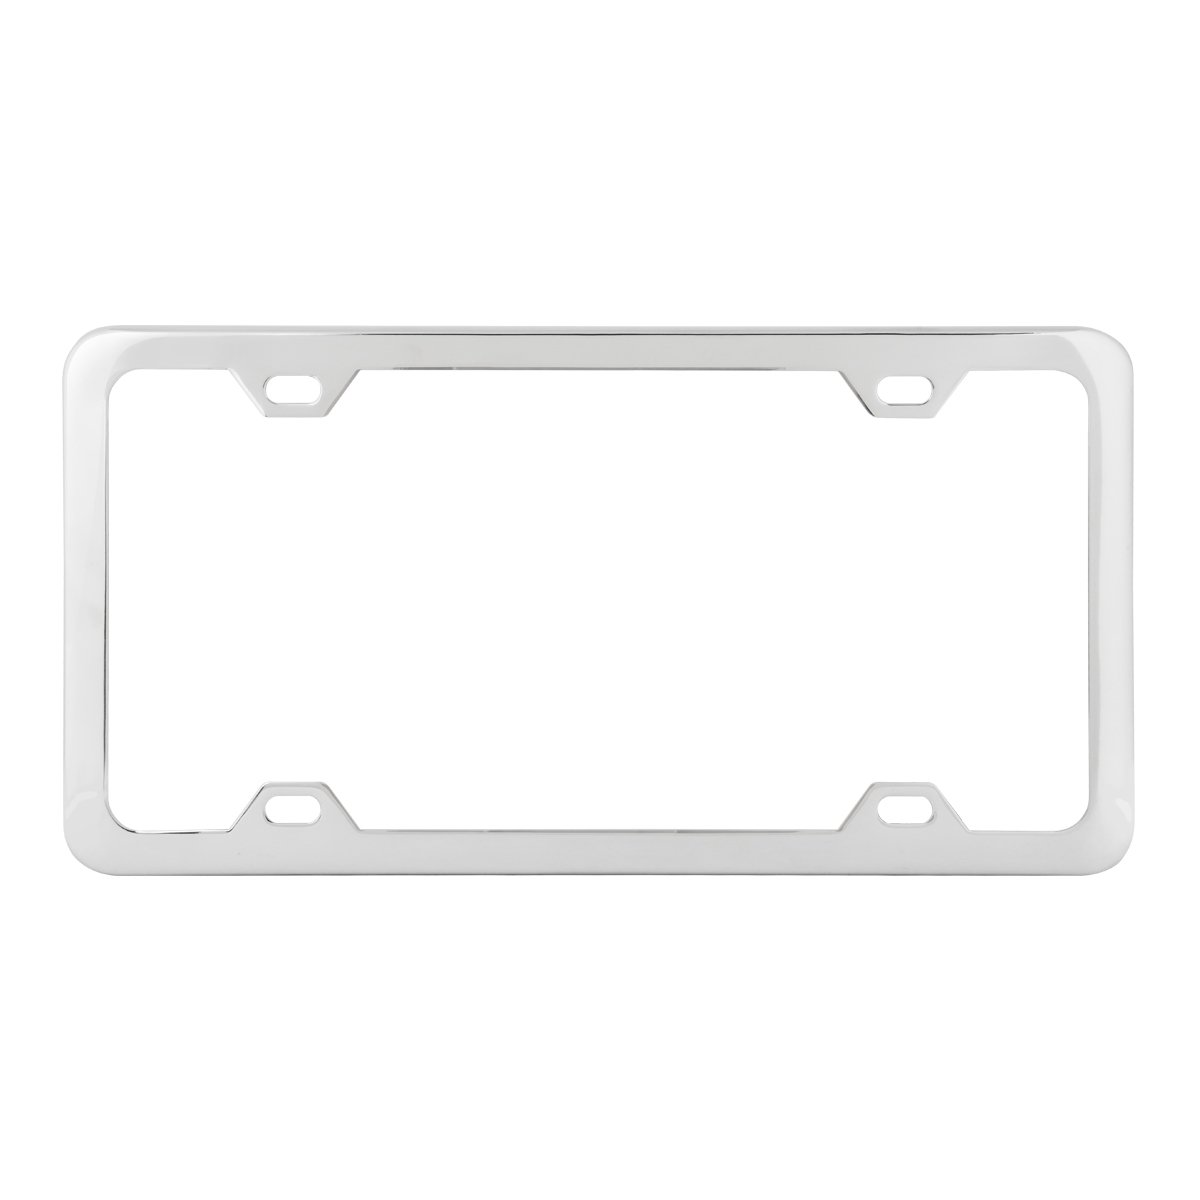 Grand General 60414 Matte Black Powder Coated License Plate Frame with 4 Holes